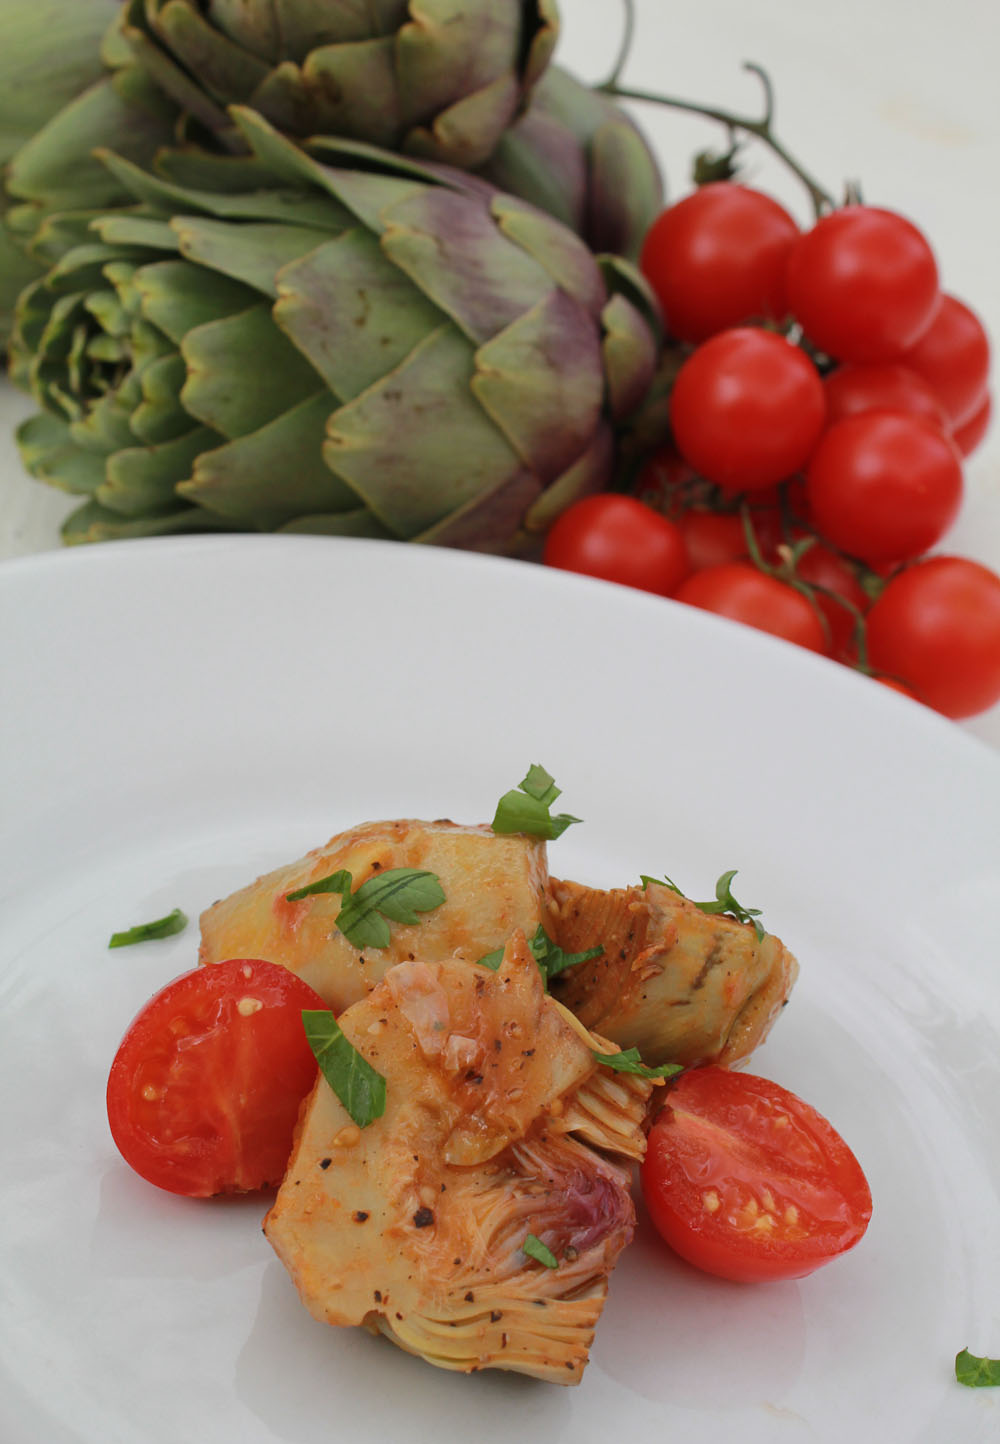 Artichoke ragù with tomatoes - Italian Notes